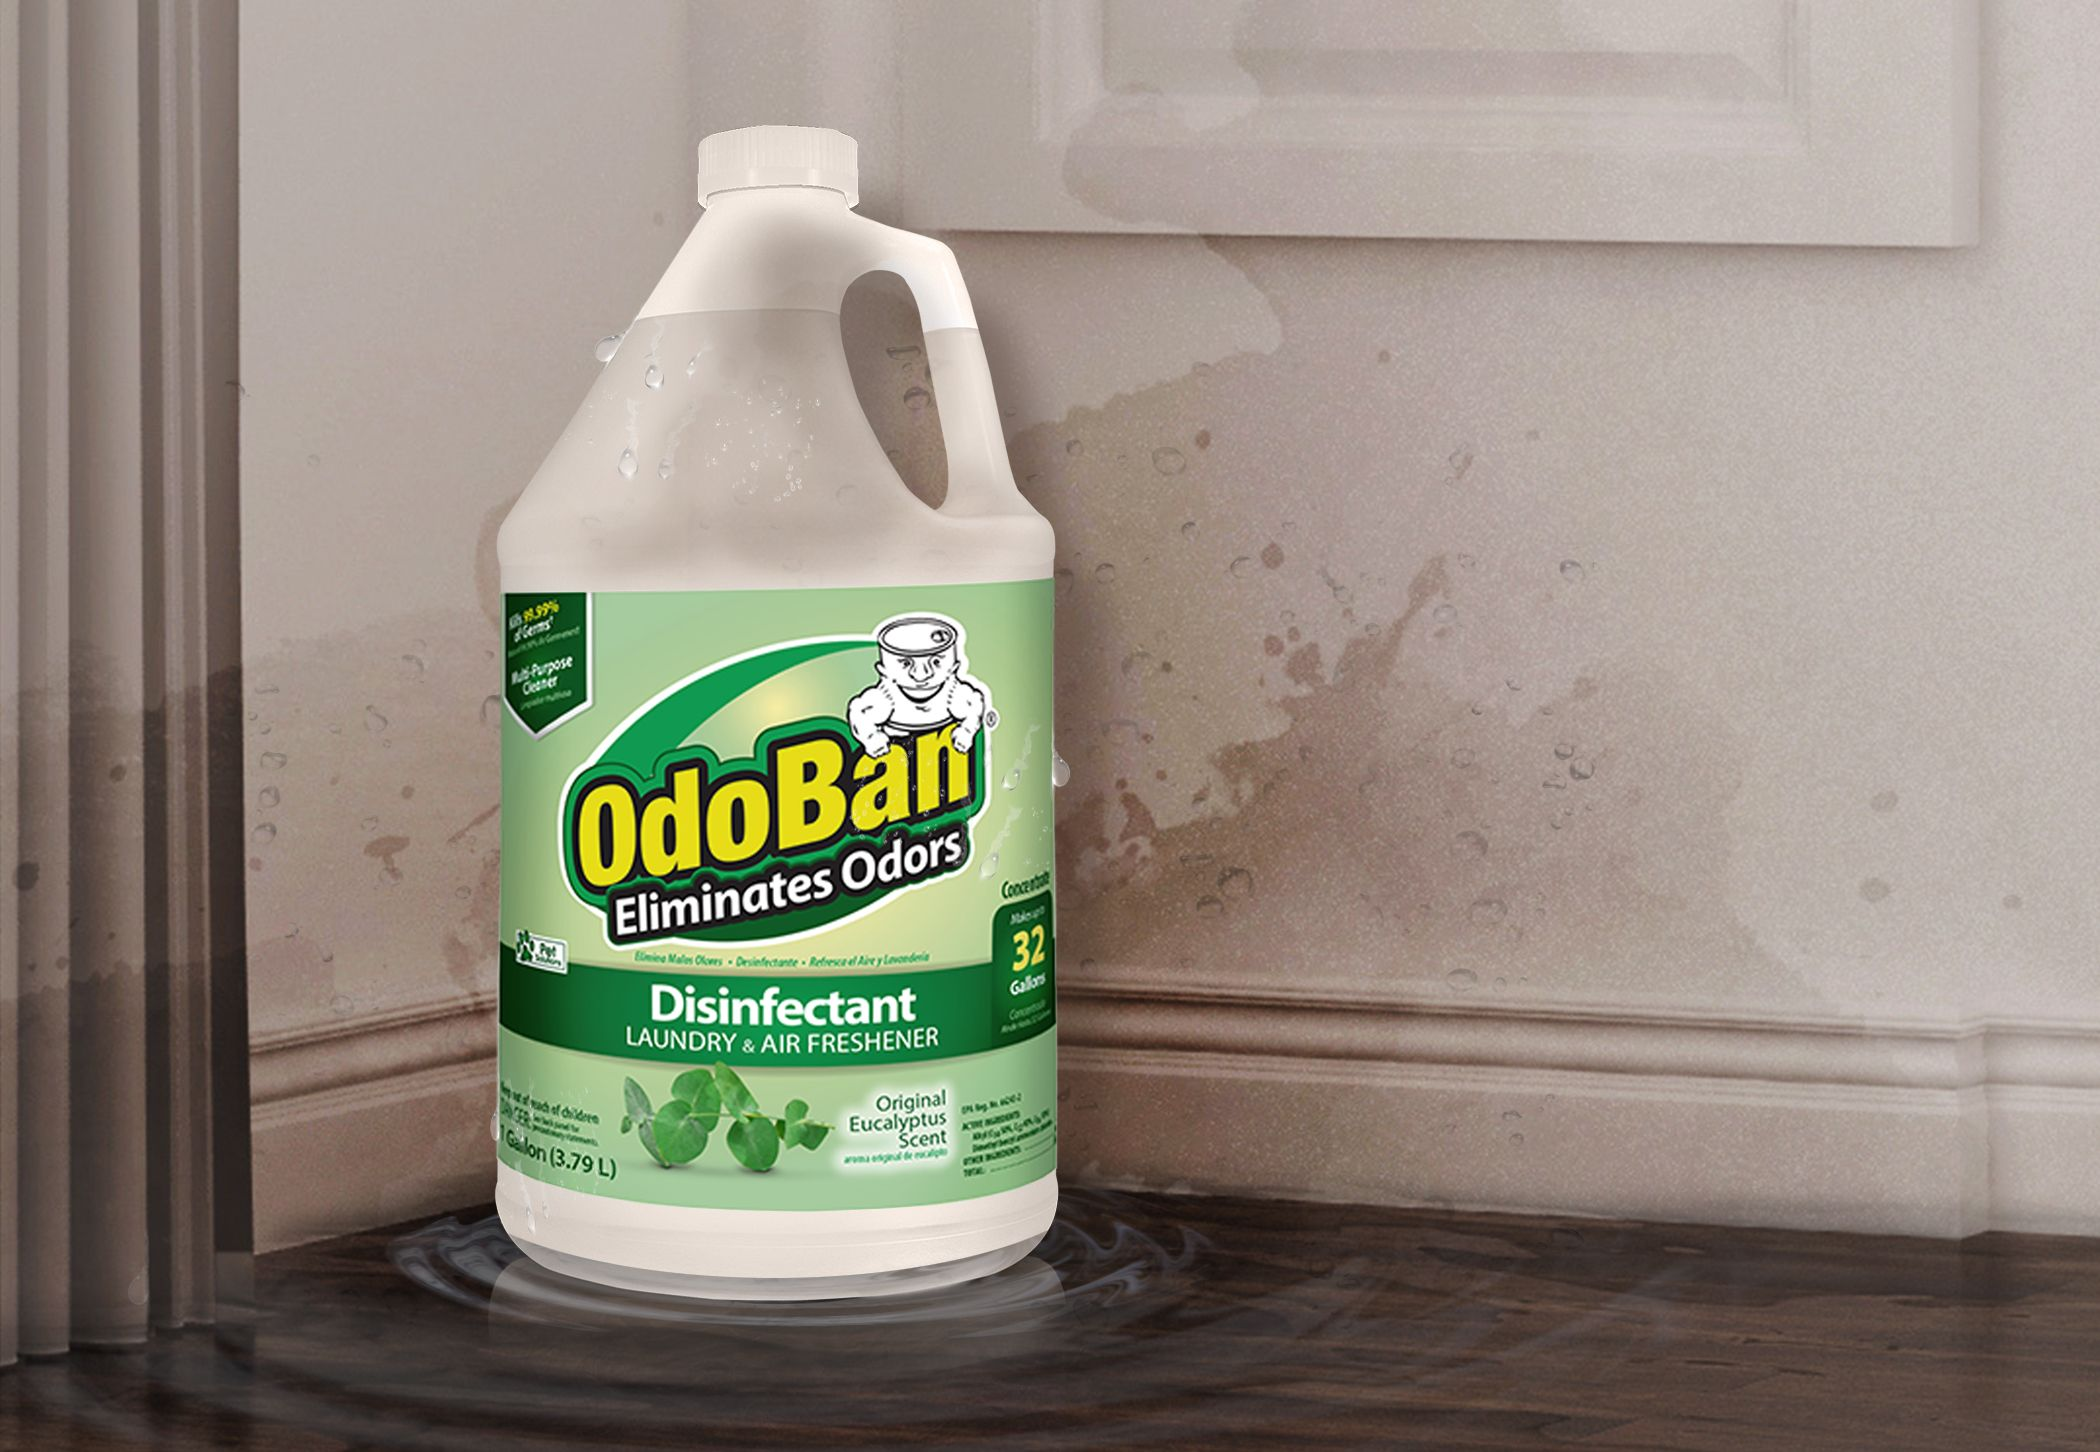 All Products - Clean, Disinfect, and Eliminate Odors